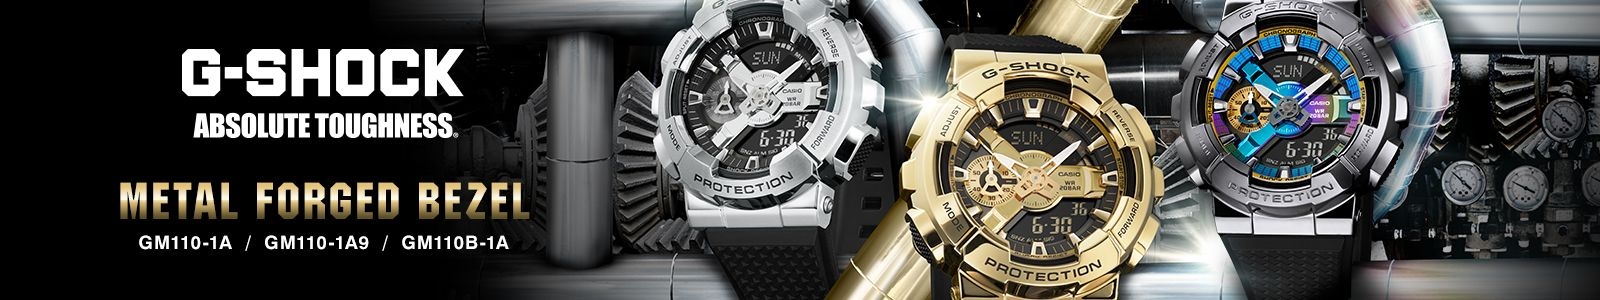 G-Shock, Absolute Toughness, Metal Forged Bezel, GM110-1A / GM110-1A9 / GM110B-1A